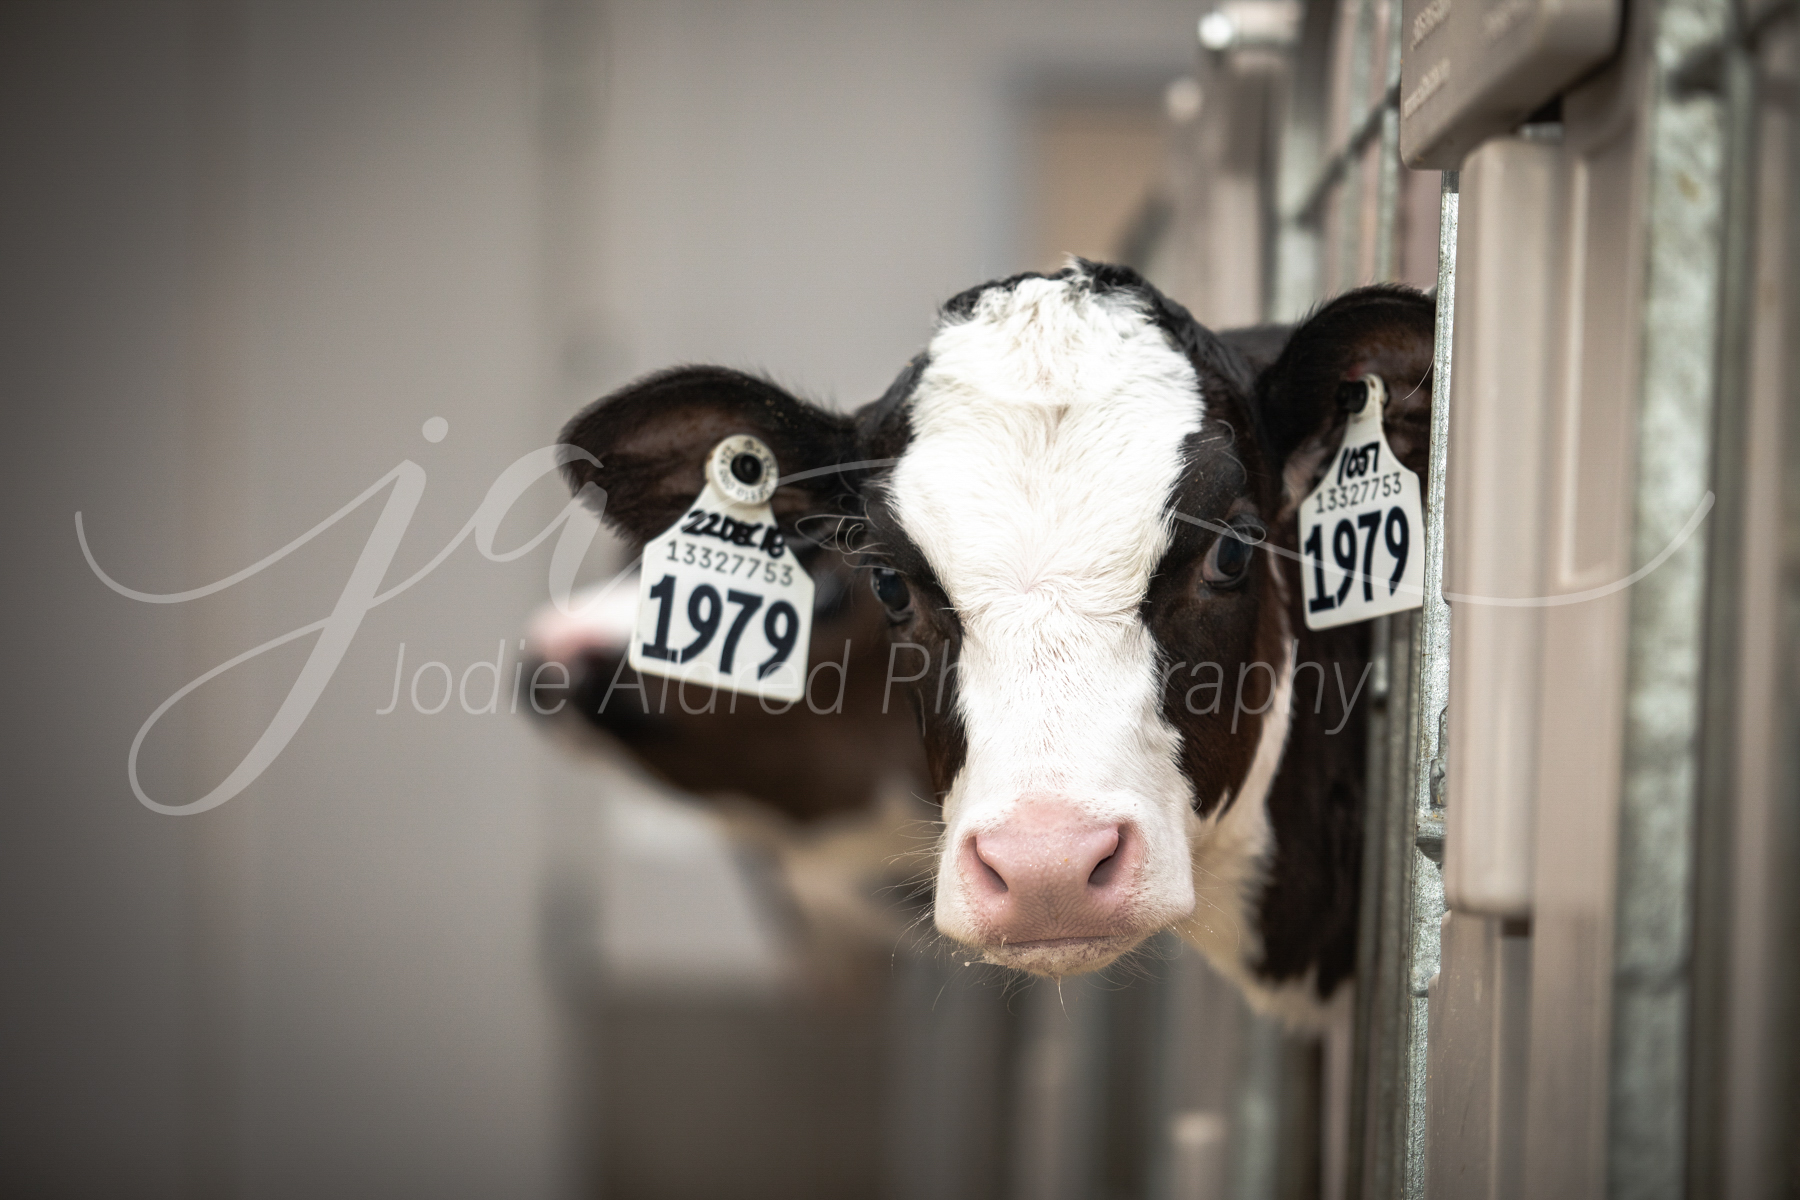 Jodie-Aldred-Photography-Ontario-Agriculture-Photographer-Farm-Outdoors-Nature-Middlesex-Elgin-Chathma-Kent-Huron-Photographer-calf-dairy.jpg